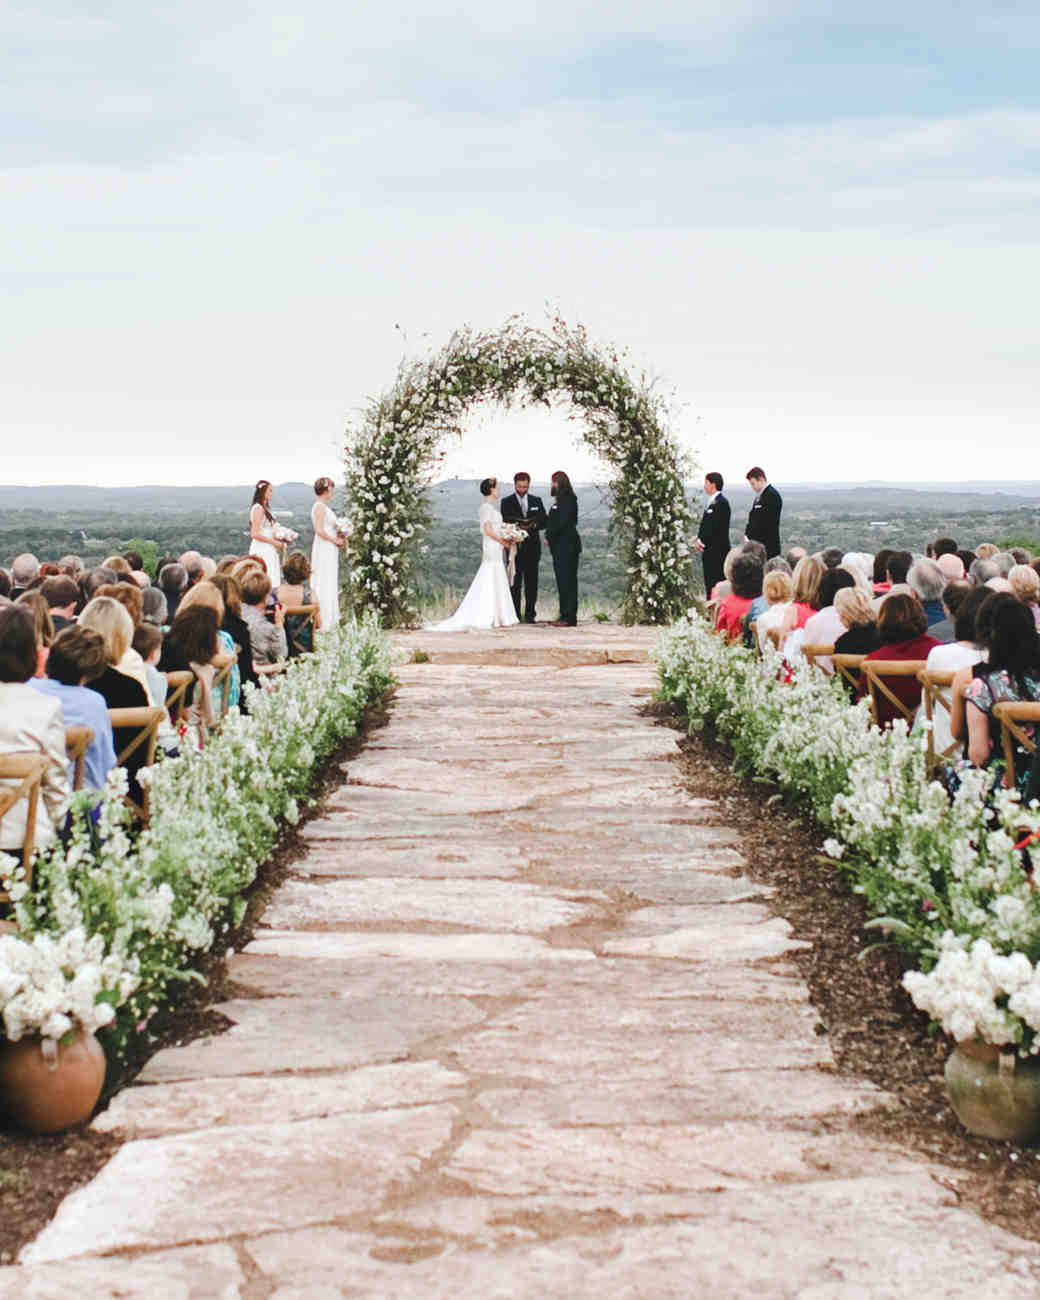 Garden Wedding Altar Ideas: 59 Wedding Arches That Will Instantly Upgrade Your